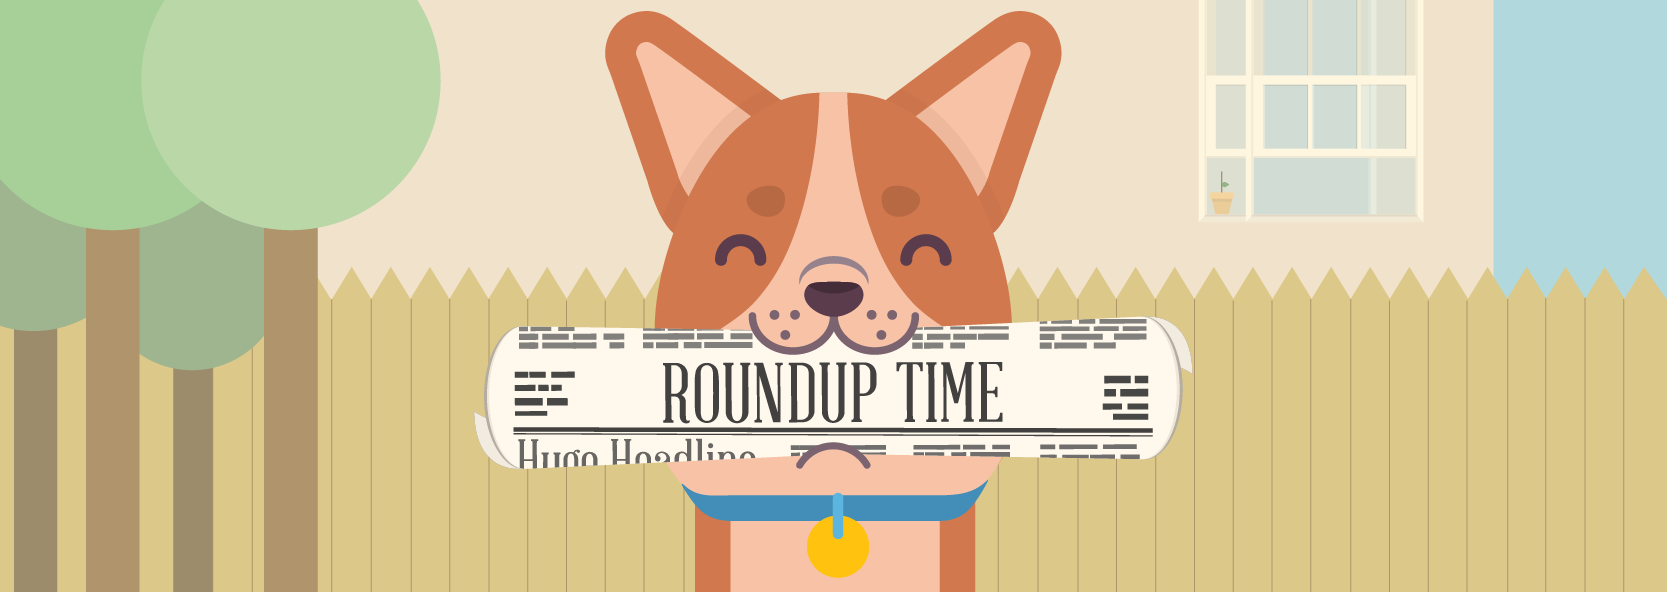 August Online Marketing Roundup